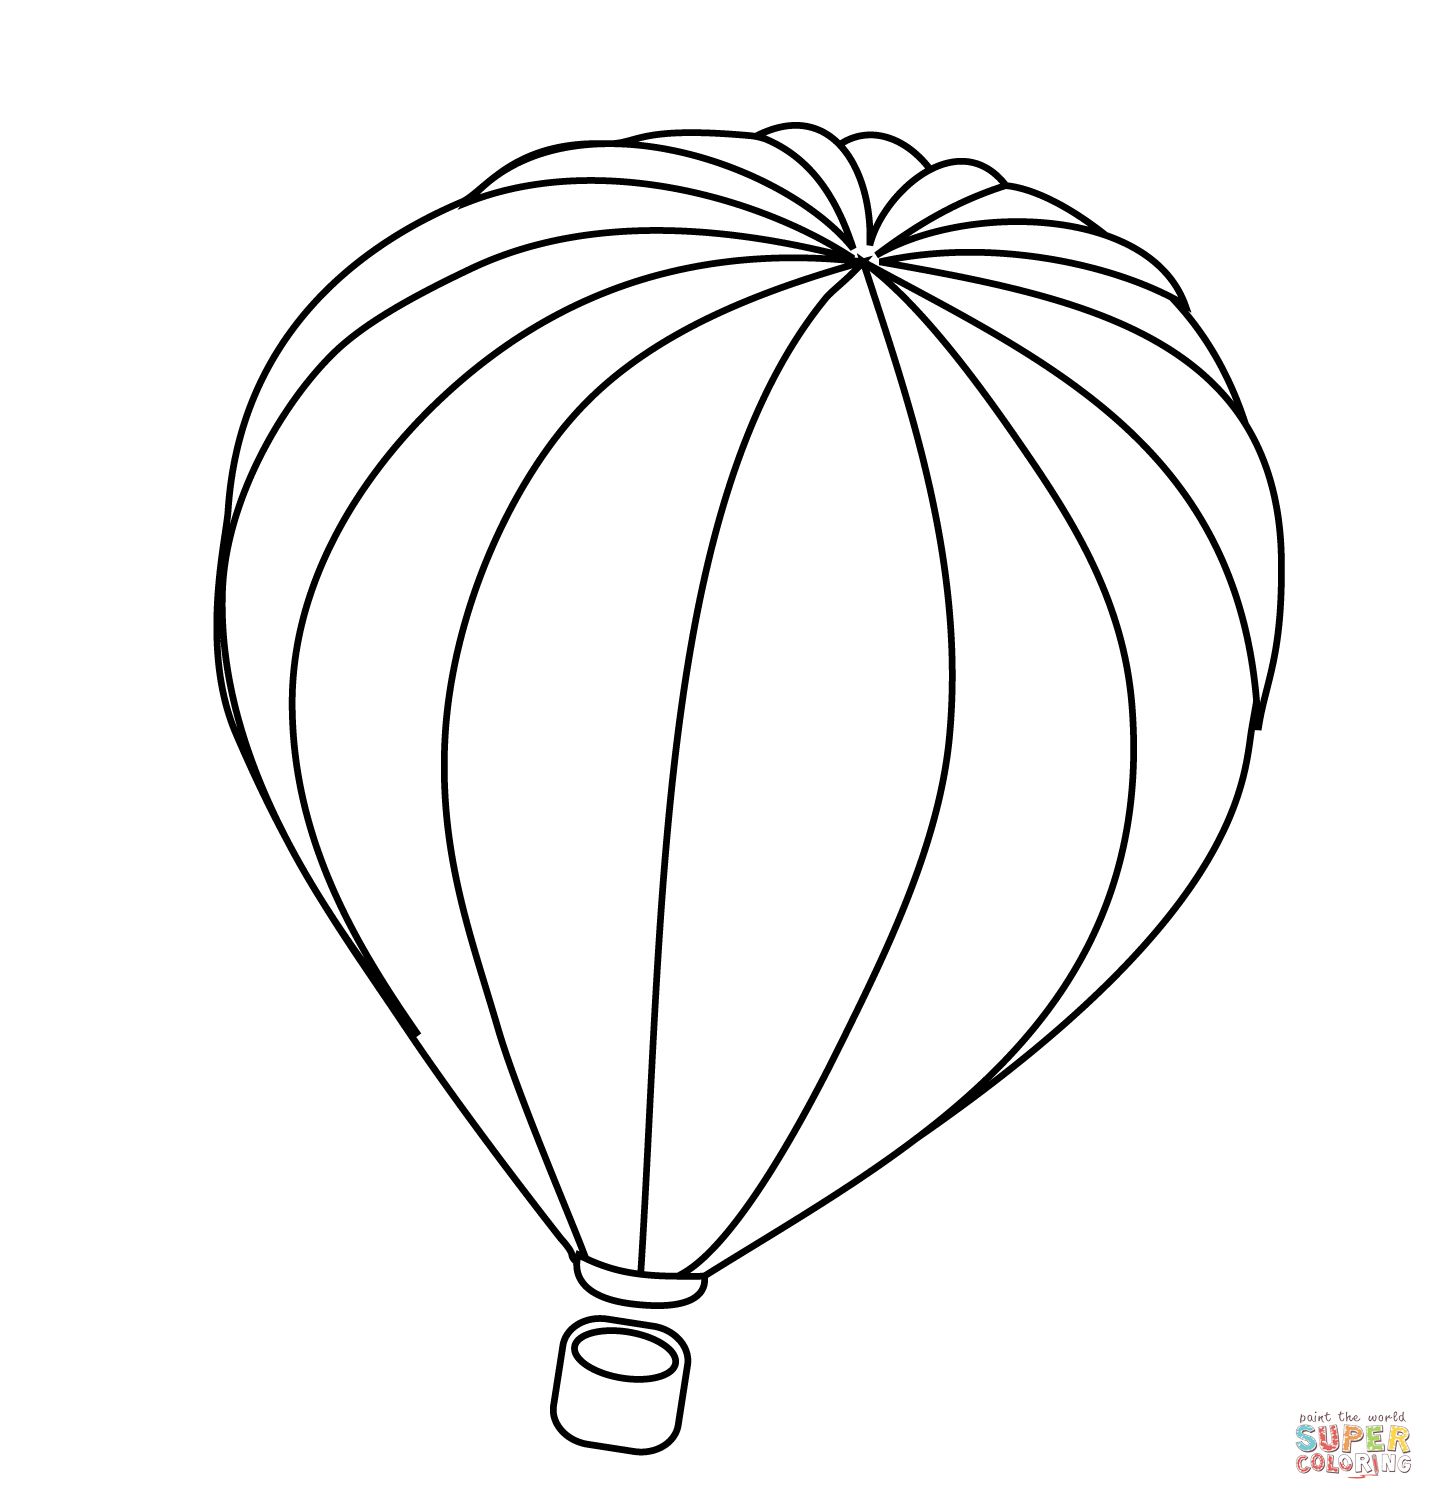 Hot Air Balloon Coloring Pages - Hot Air Balloon Coloring Page Collection